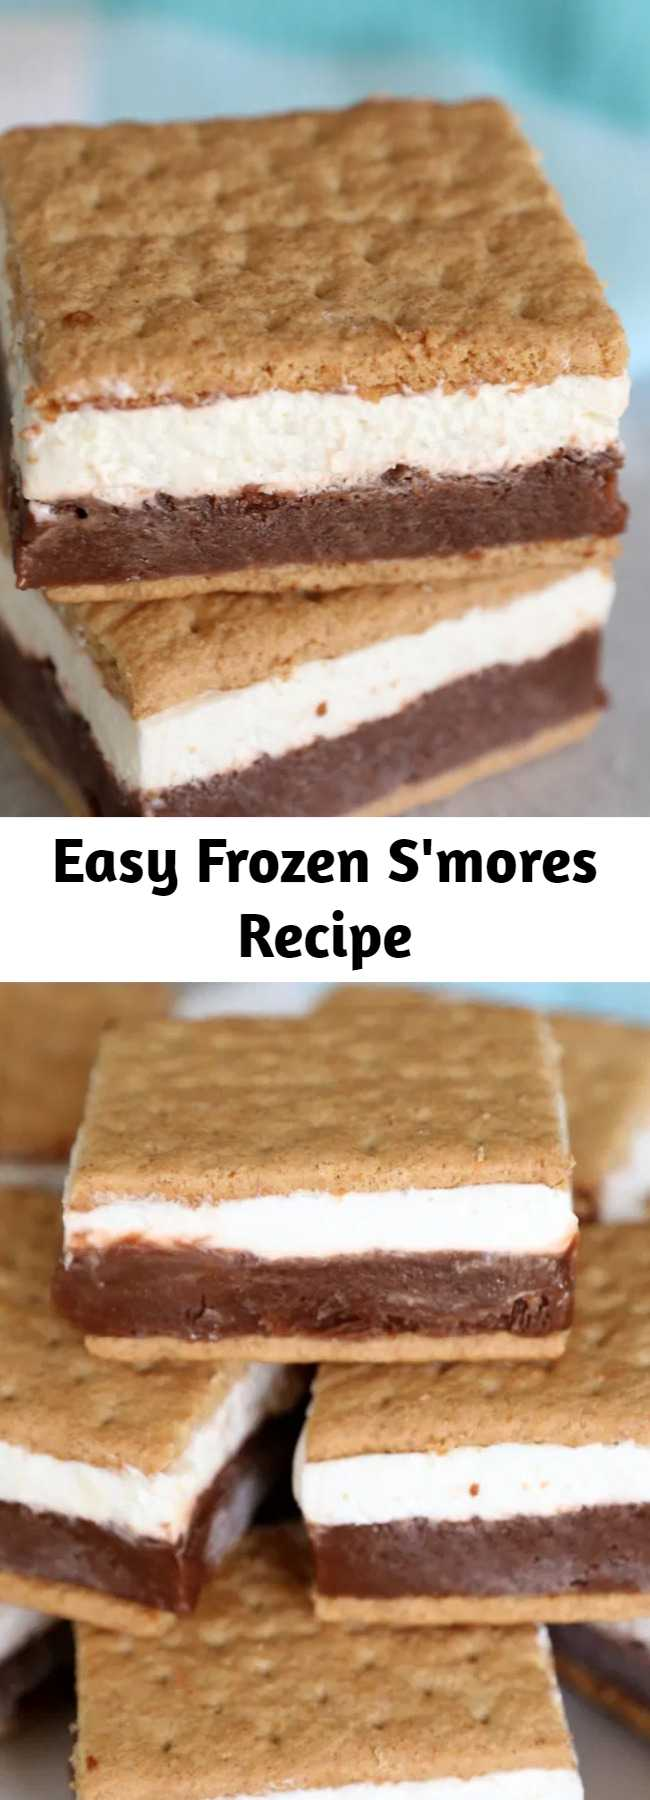 Easy Frozen S'mores Recipe - Layers of chocolate pudding and marshmallow creme make these frozen s'mores the best way to enjoy a s'more on a hot summer day! #smores